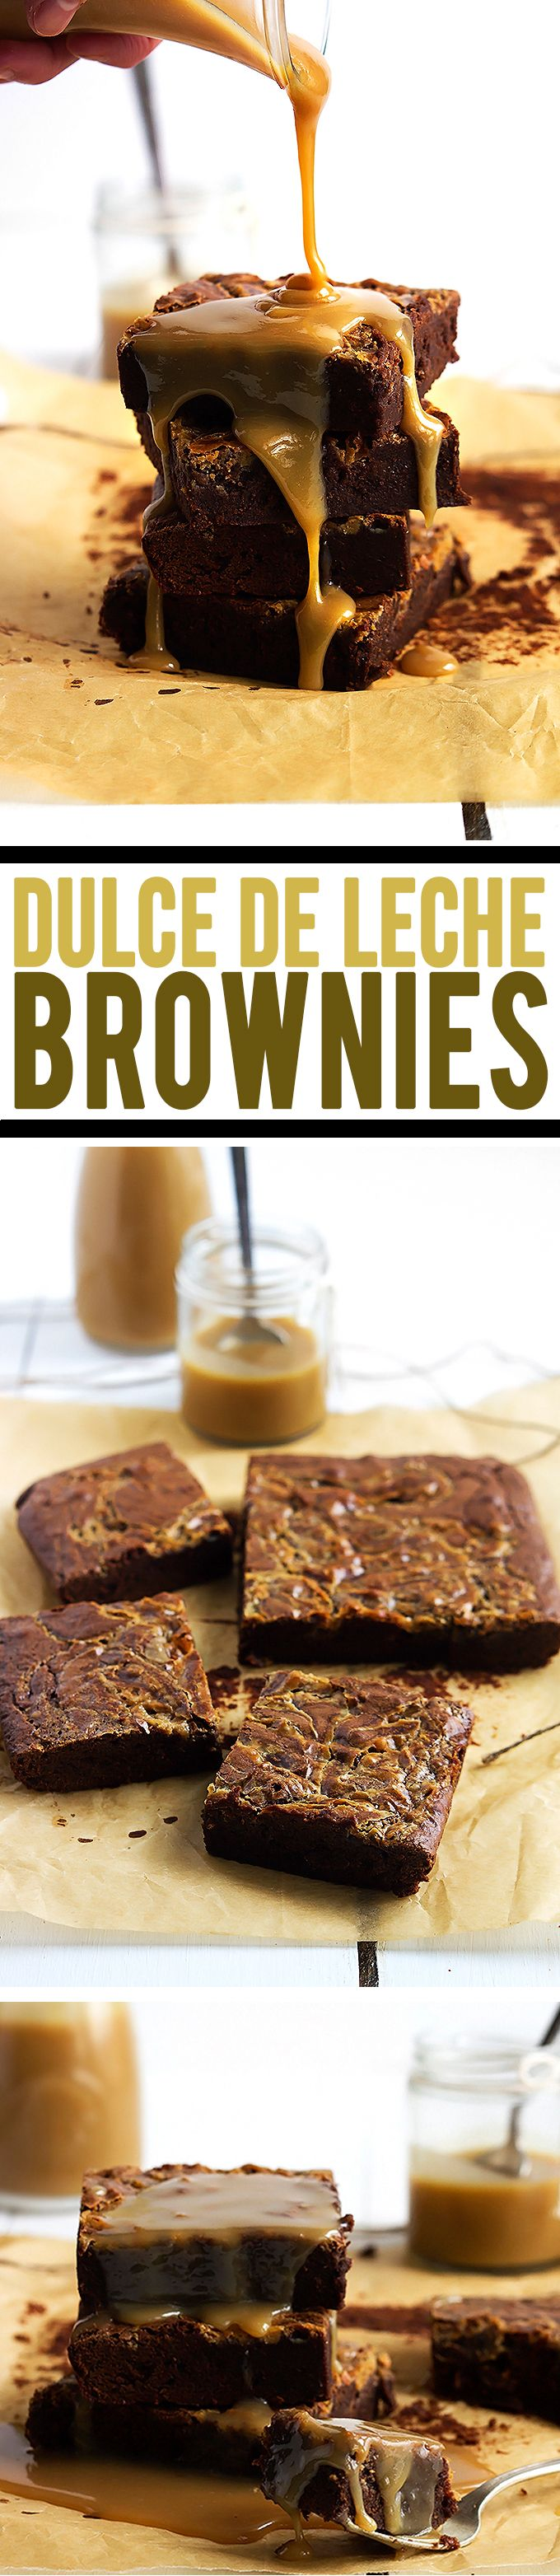 17 Best images about Brownies on Pinterest | Mississippi ...